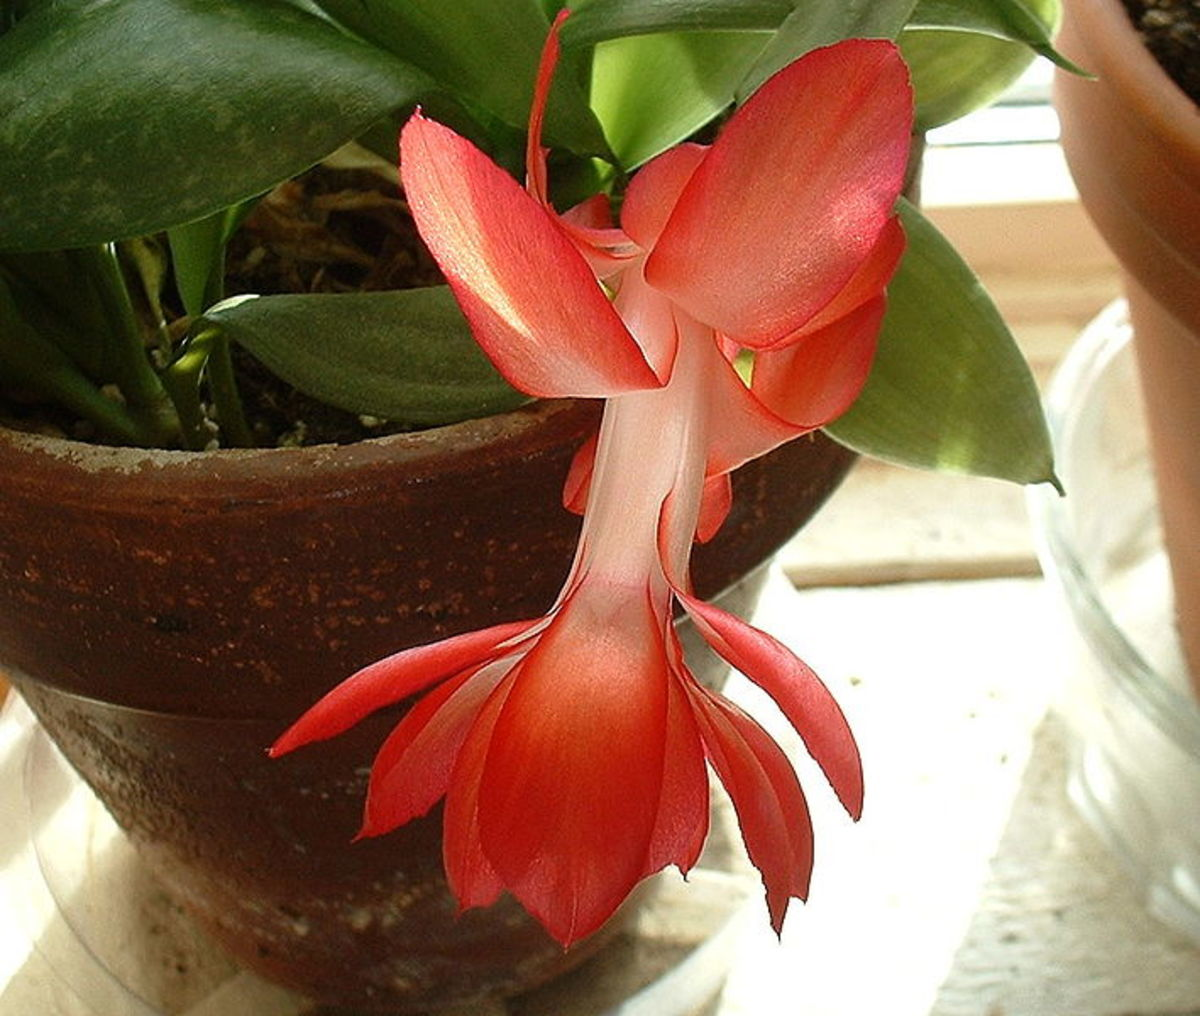 DECEMBER NATURE NOTES - How to Grow and Care For a Holiday Cactus